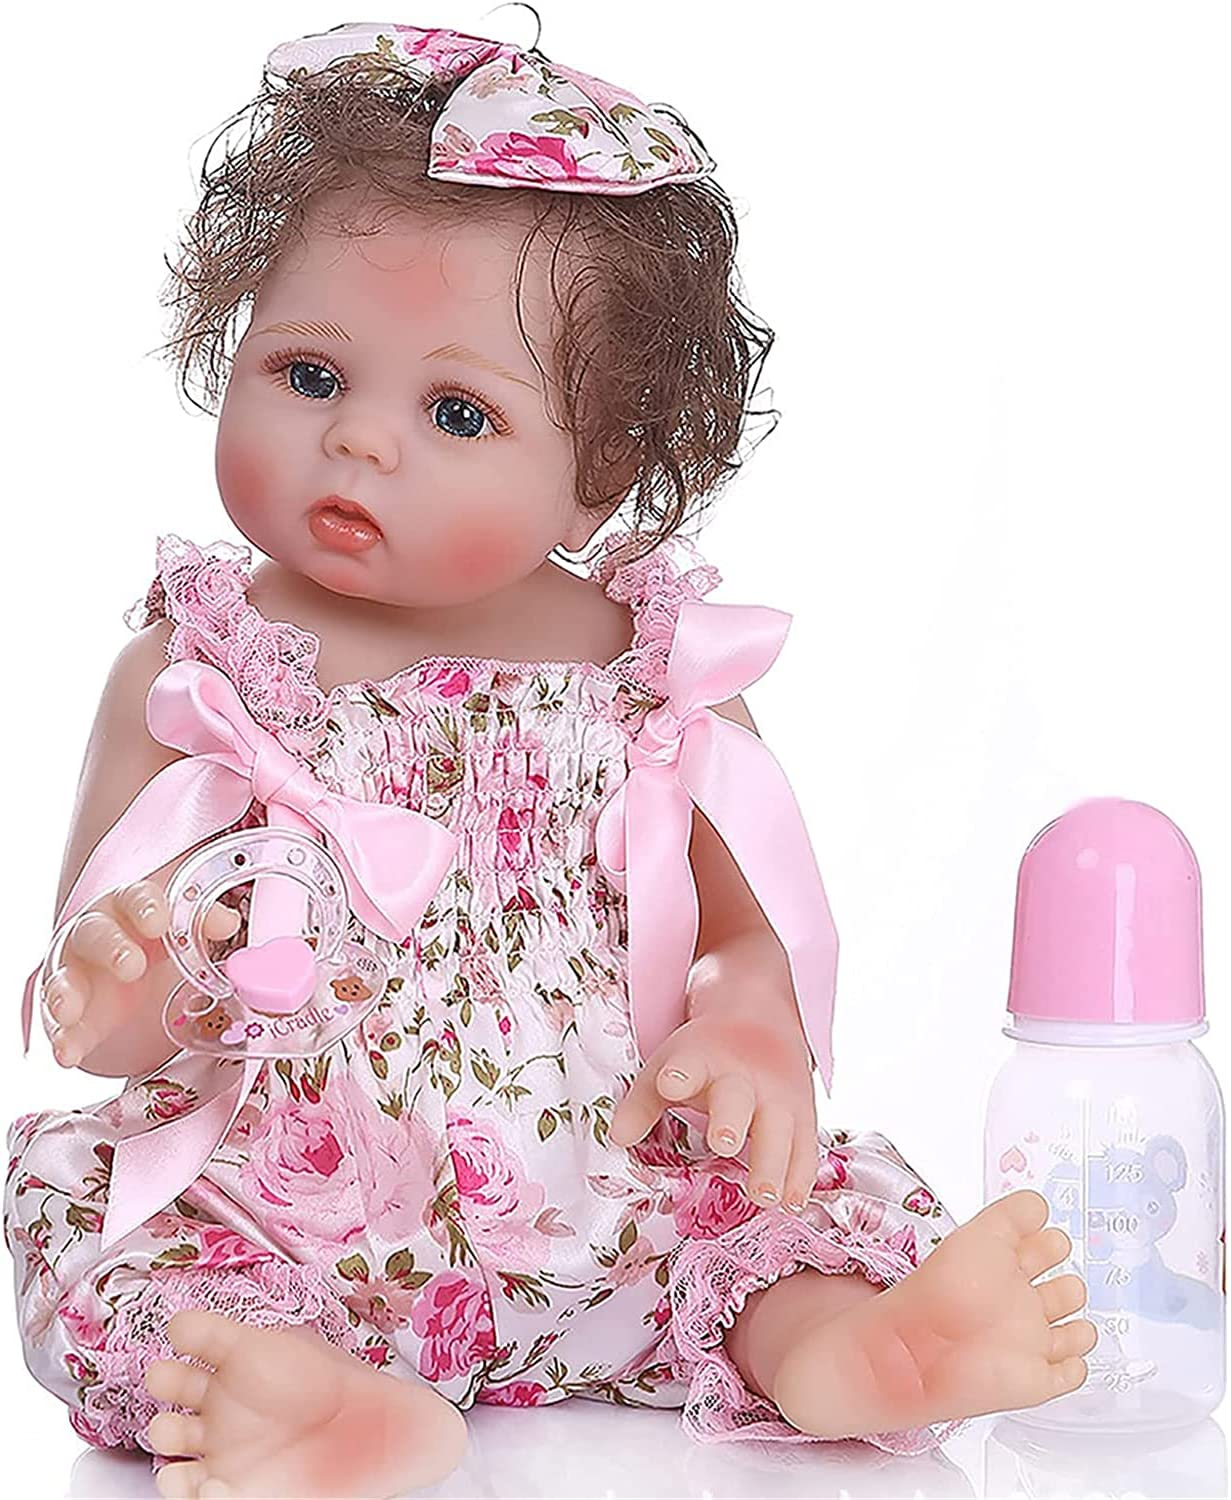 Reborn Baby Doll with Blue Eyes Long-awaited Babies Dolls Super Special SALE held Life Realistic Girl